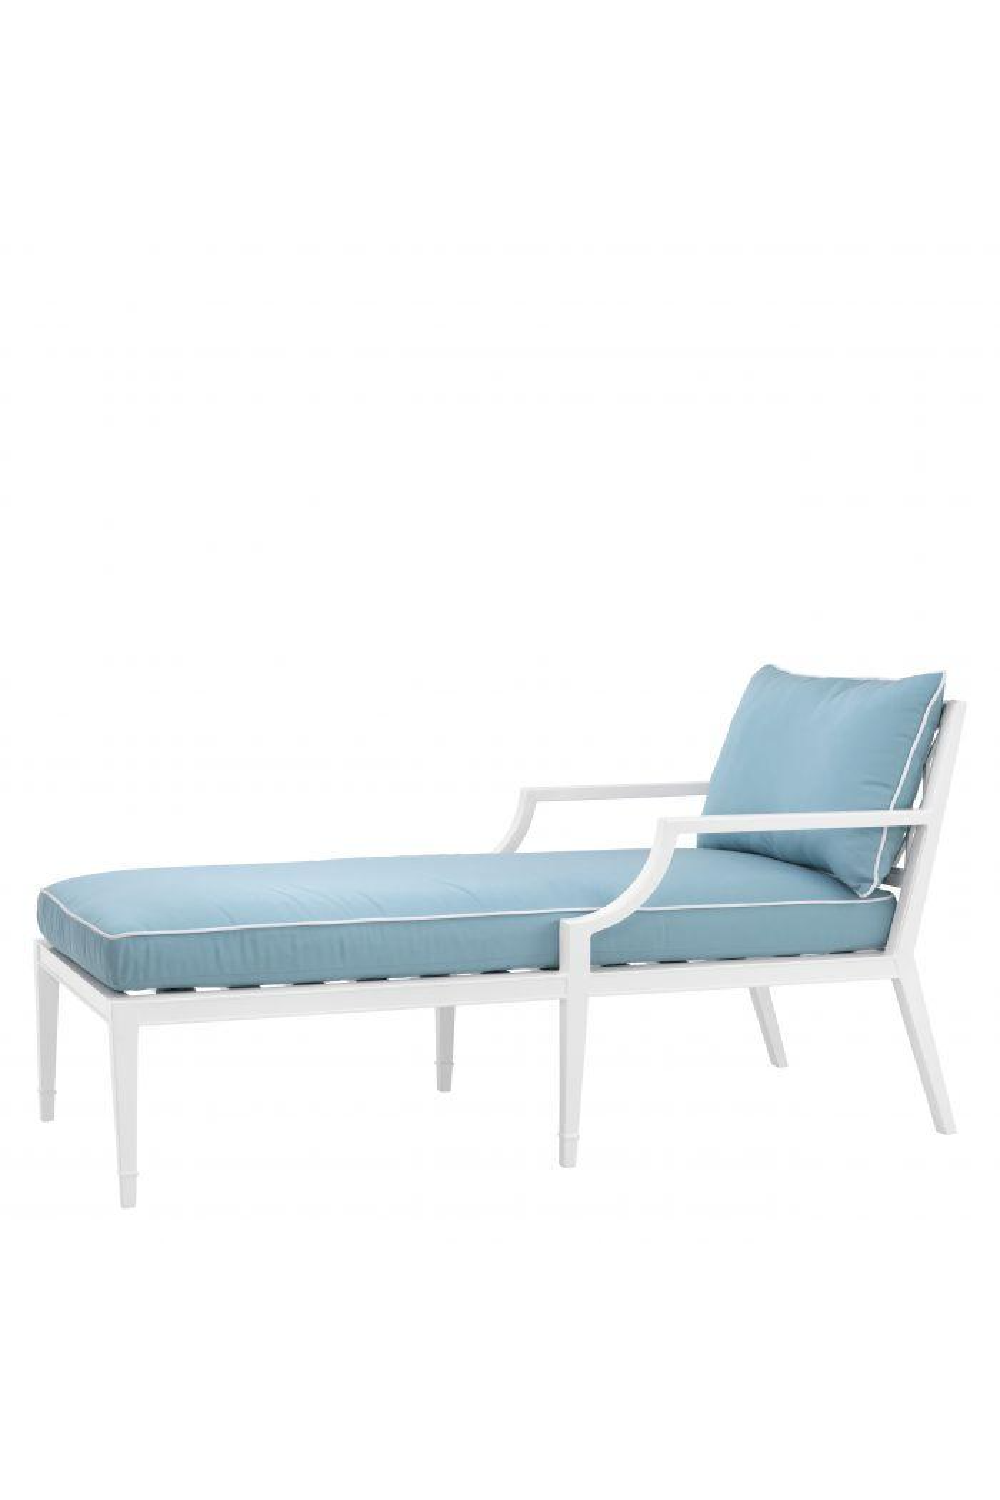 Blue Outdoor Chaise Lounge Chair | Eichholtz Bella Vista